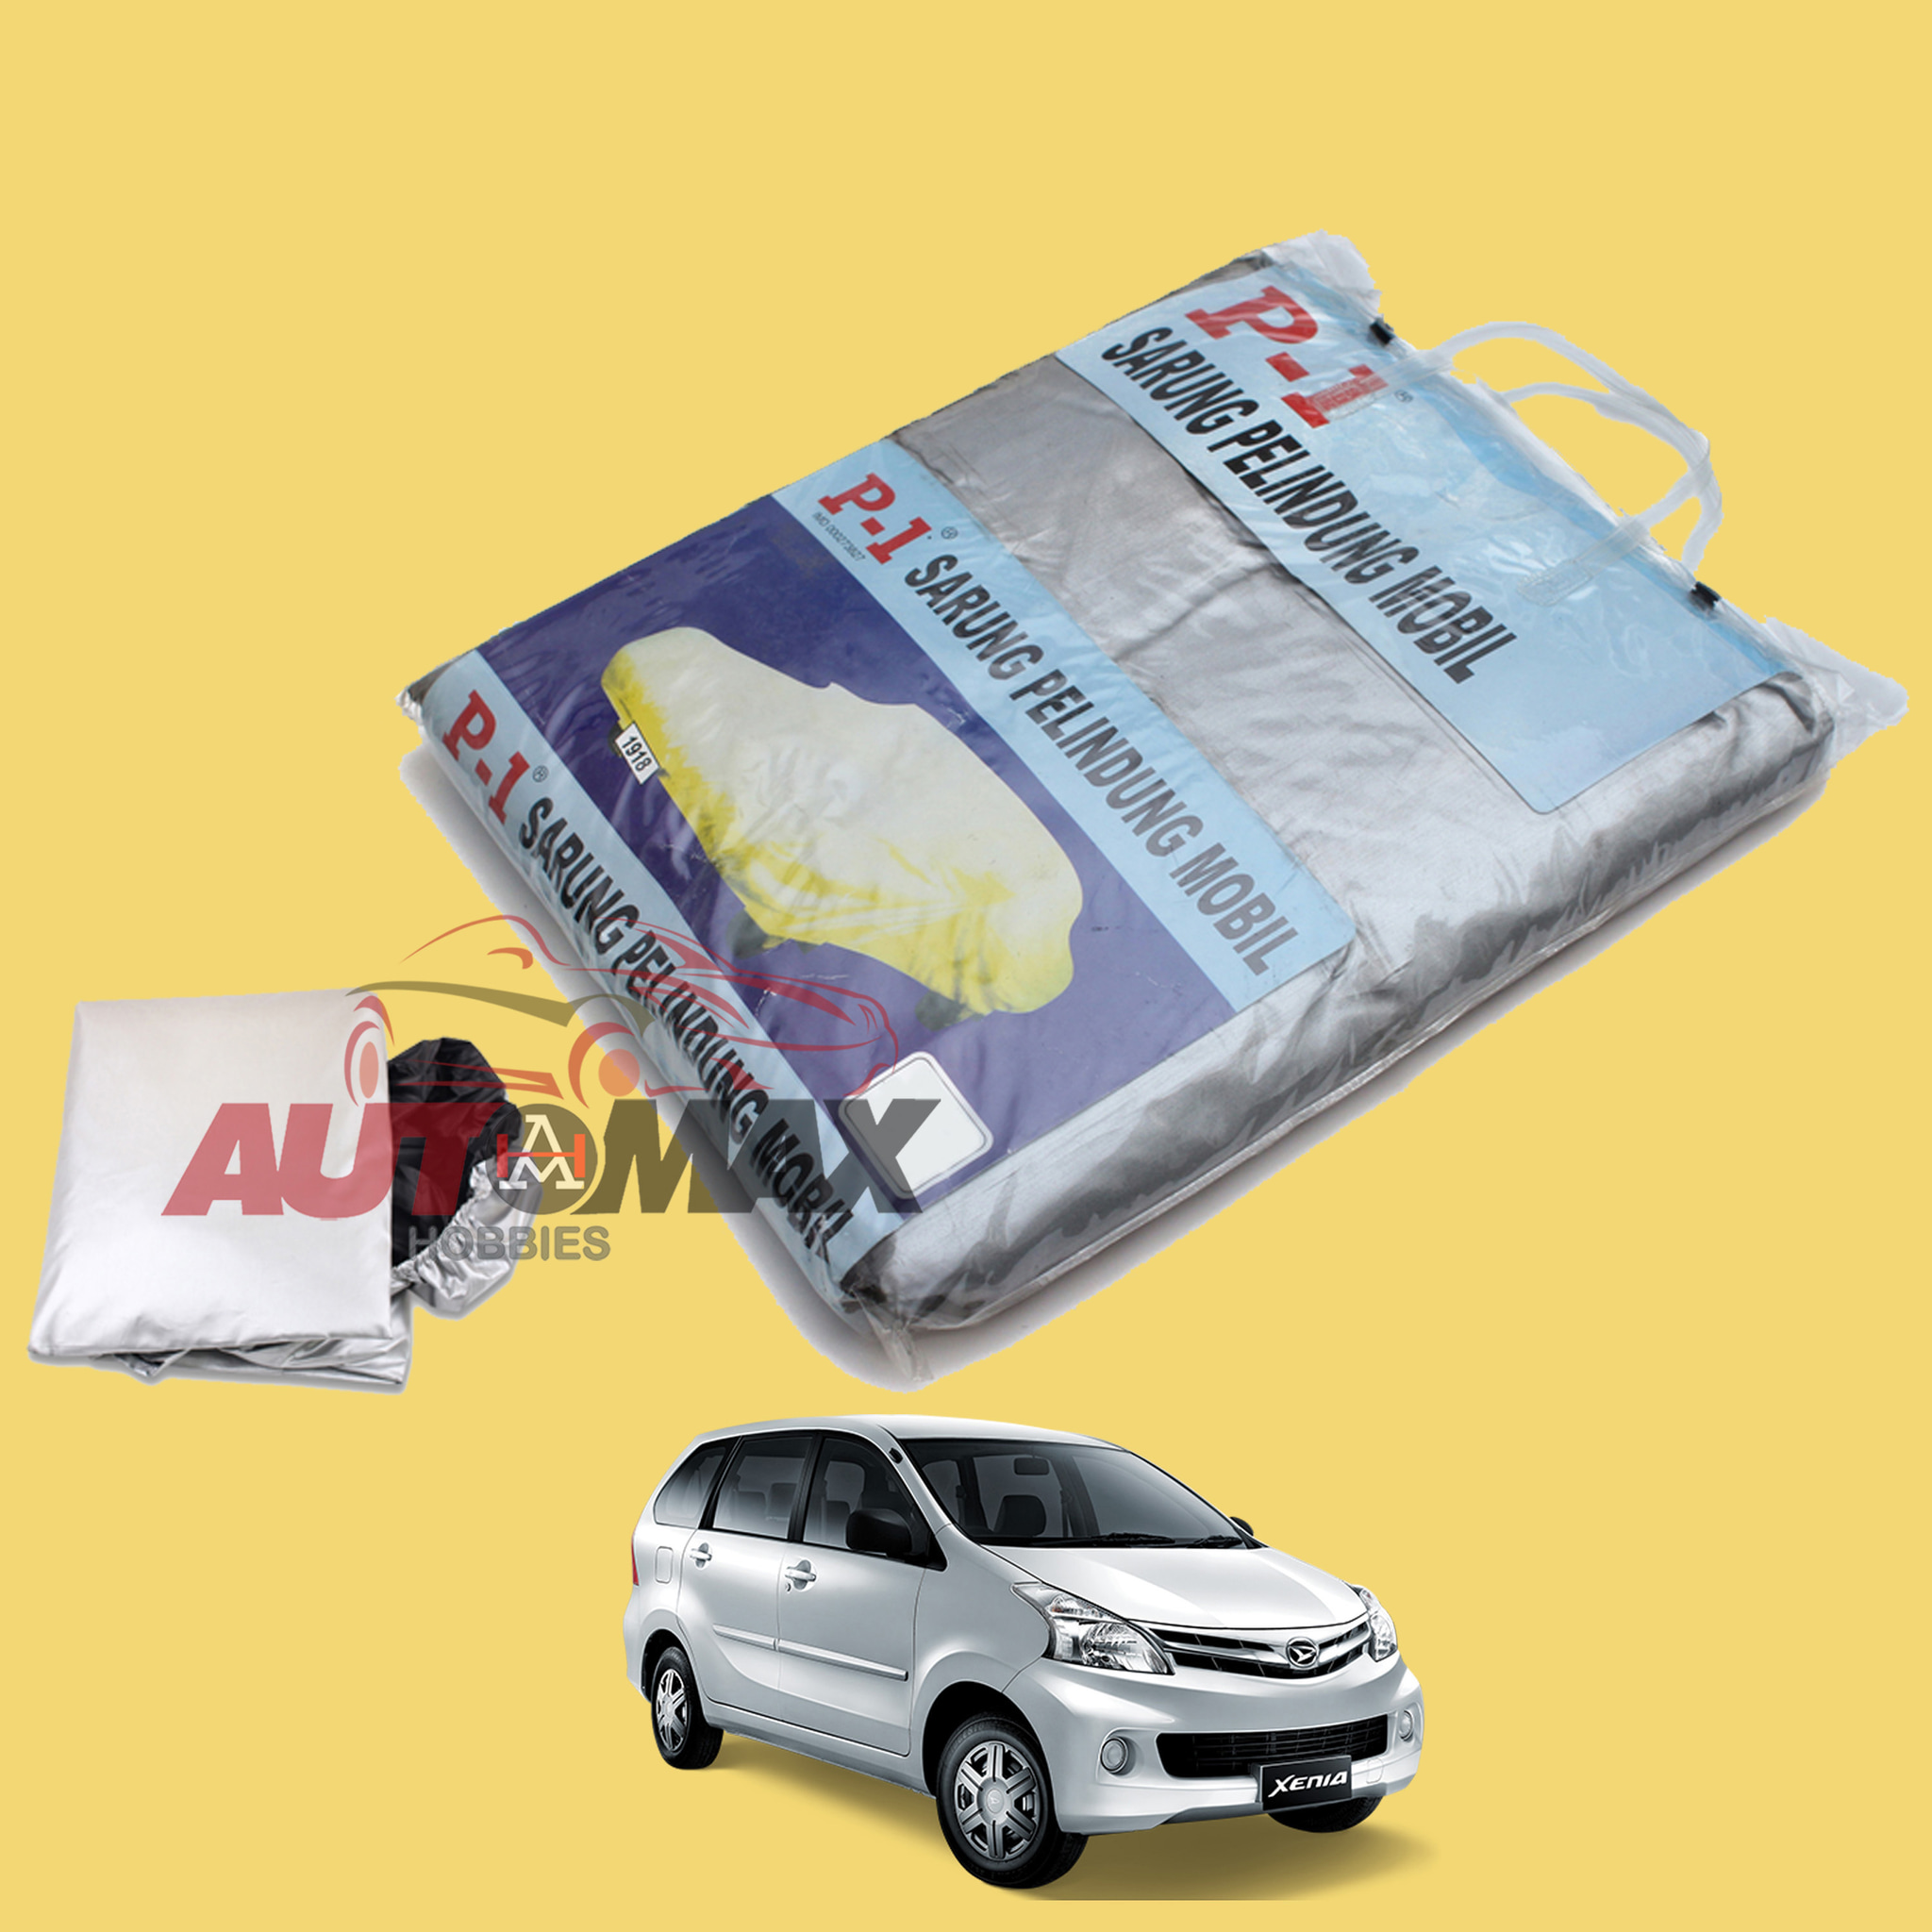 Harga Datsun Go TCS Blog Source Vanguard Body Cover Penutup Mobil Etios Sarung Mobil Etios Source